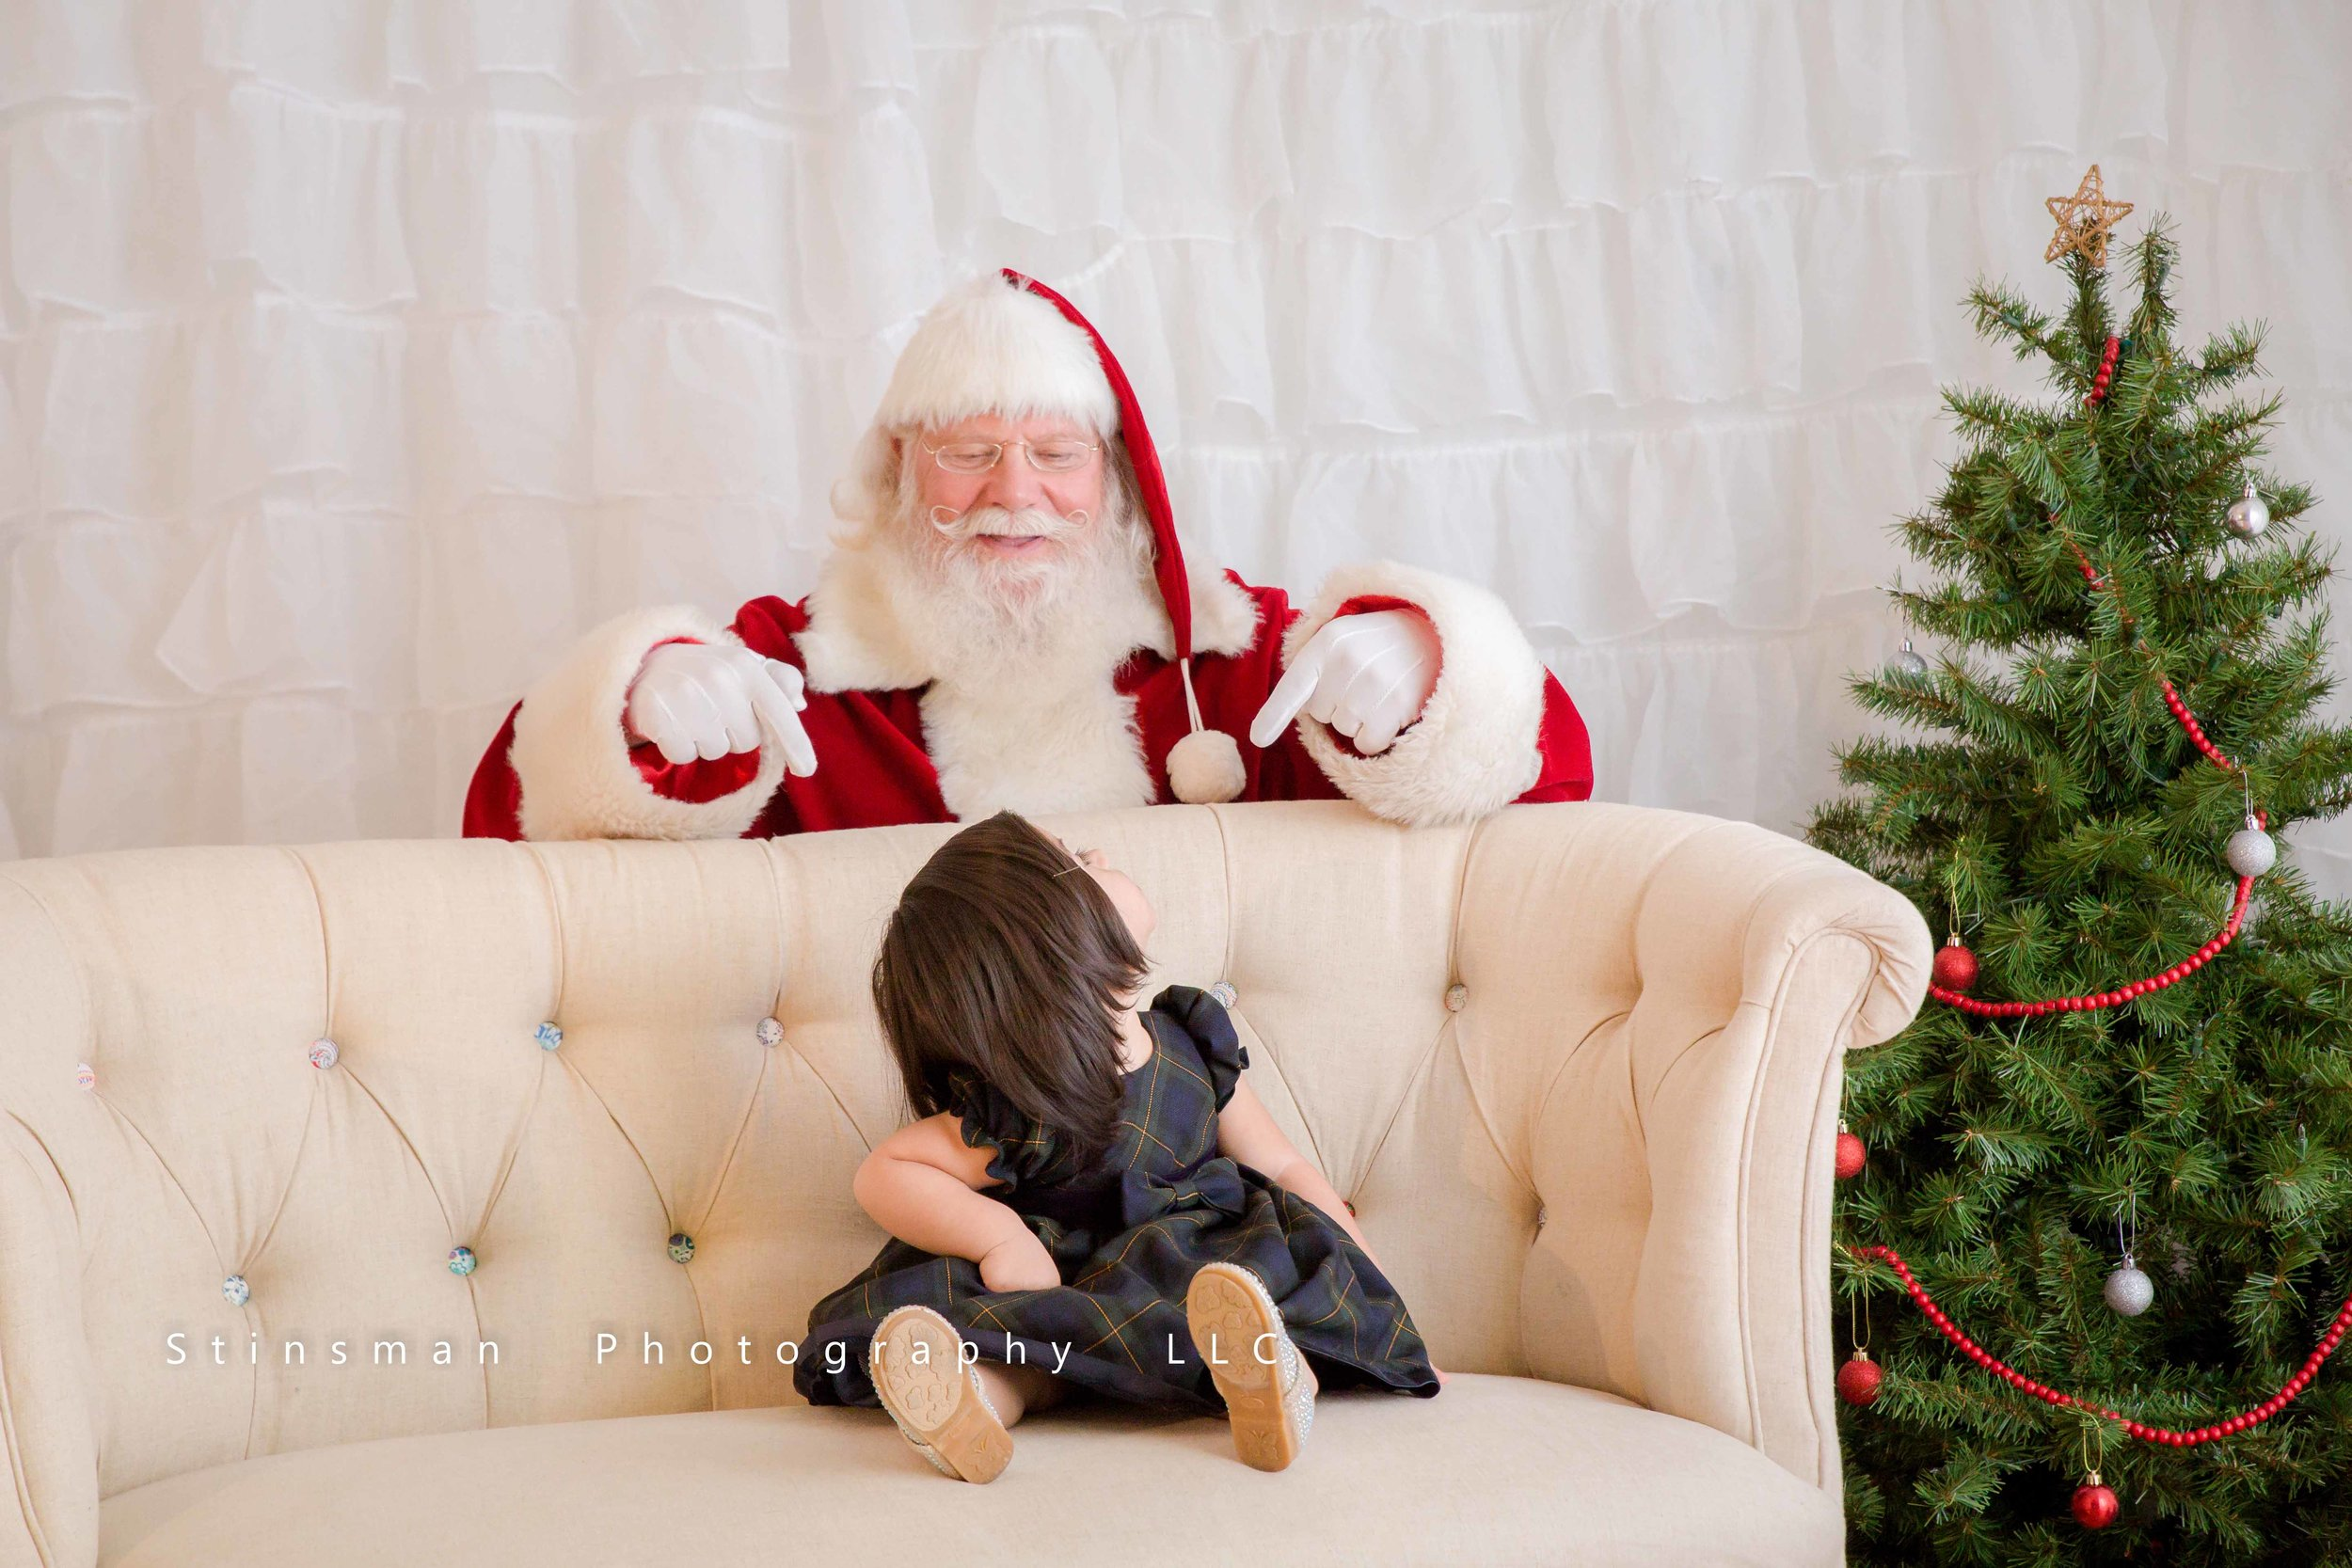 little girl sitting on a couch and Santa behind her